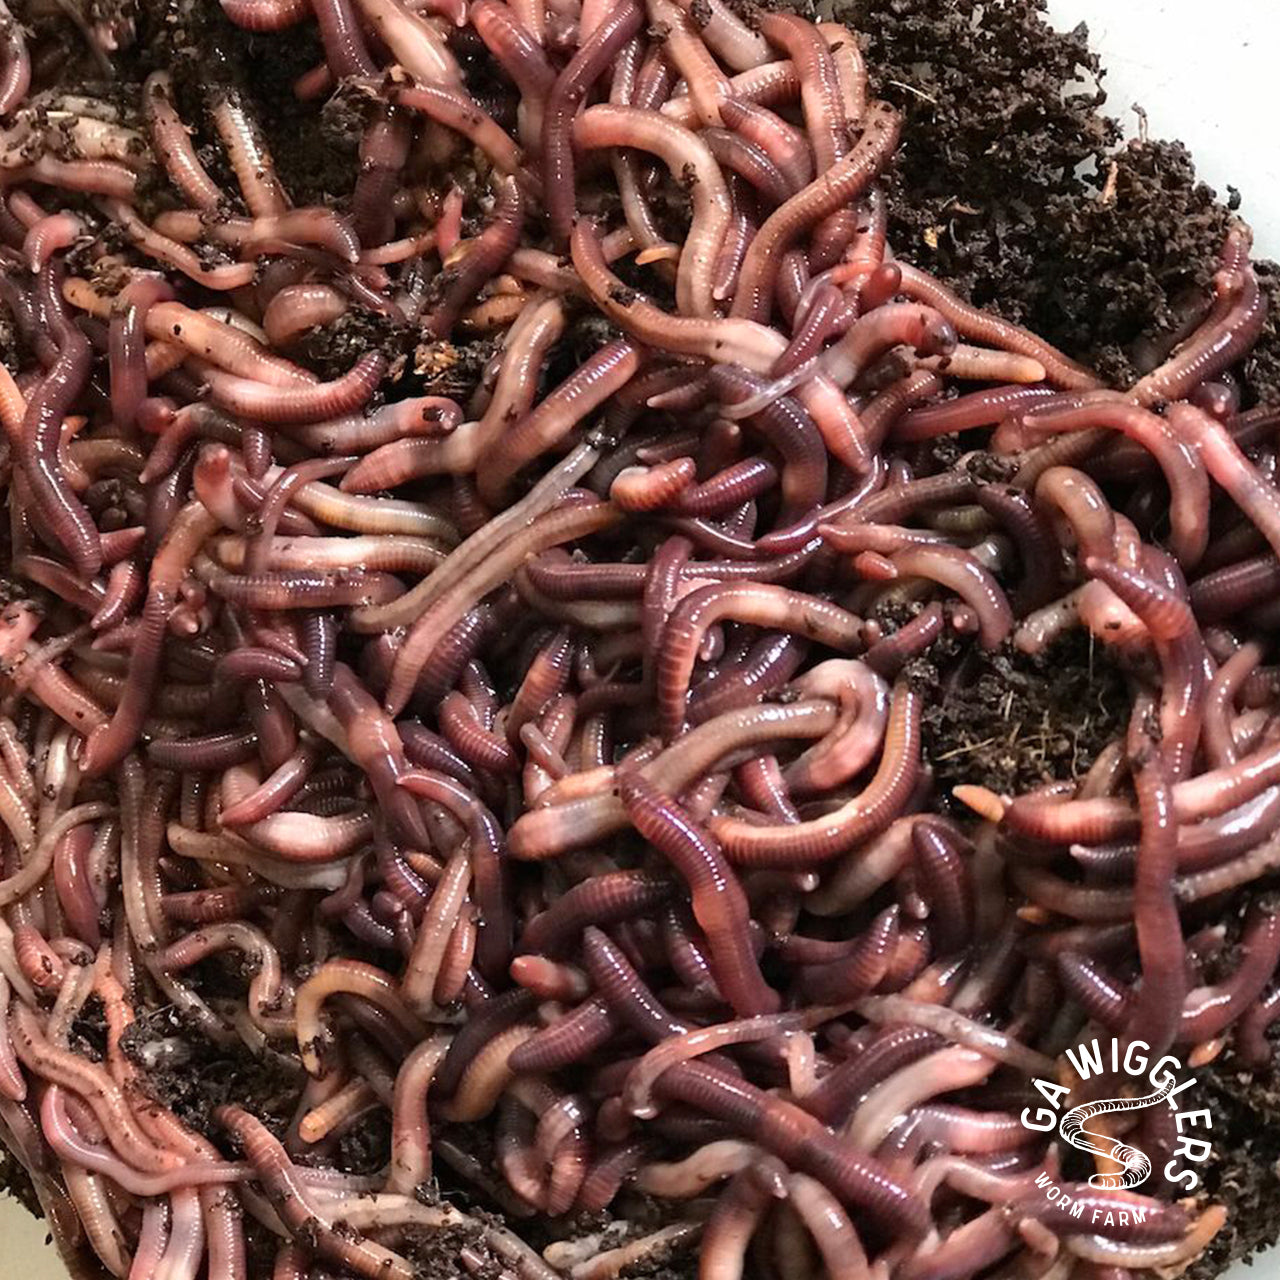 Red Wigglers Live Worms